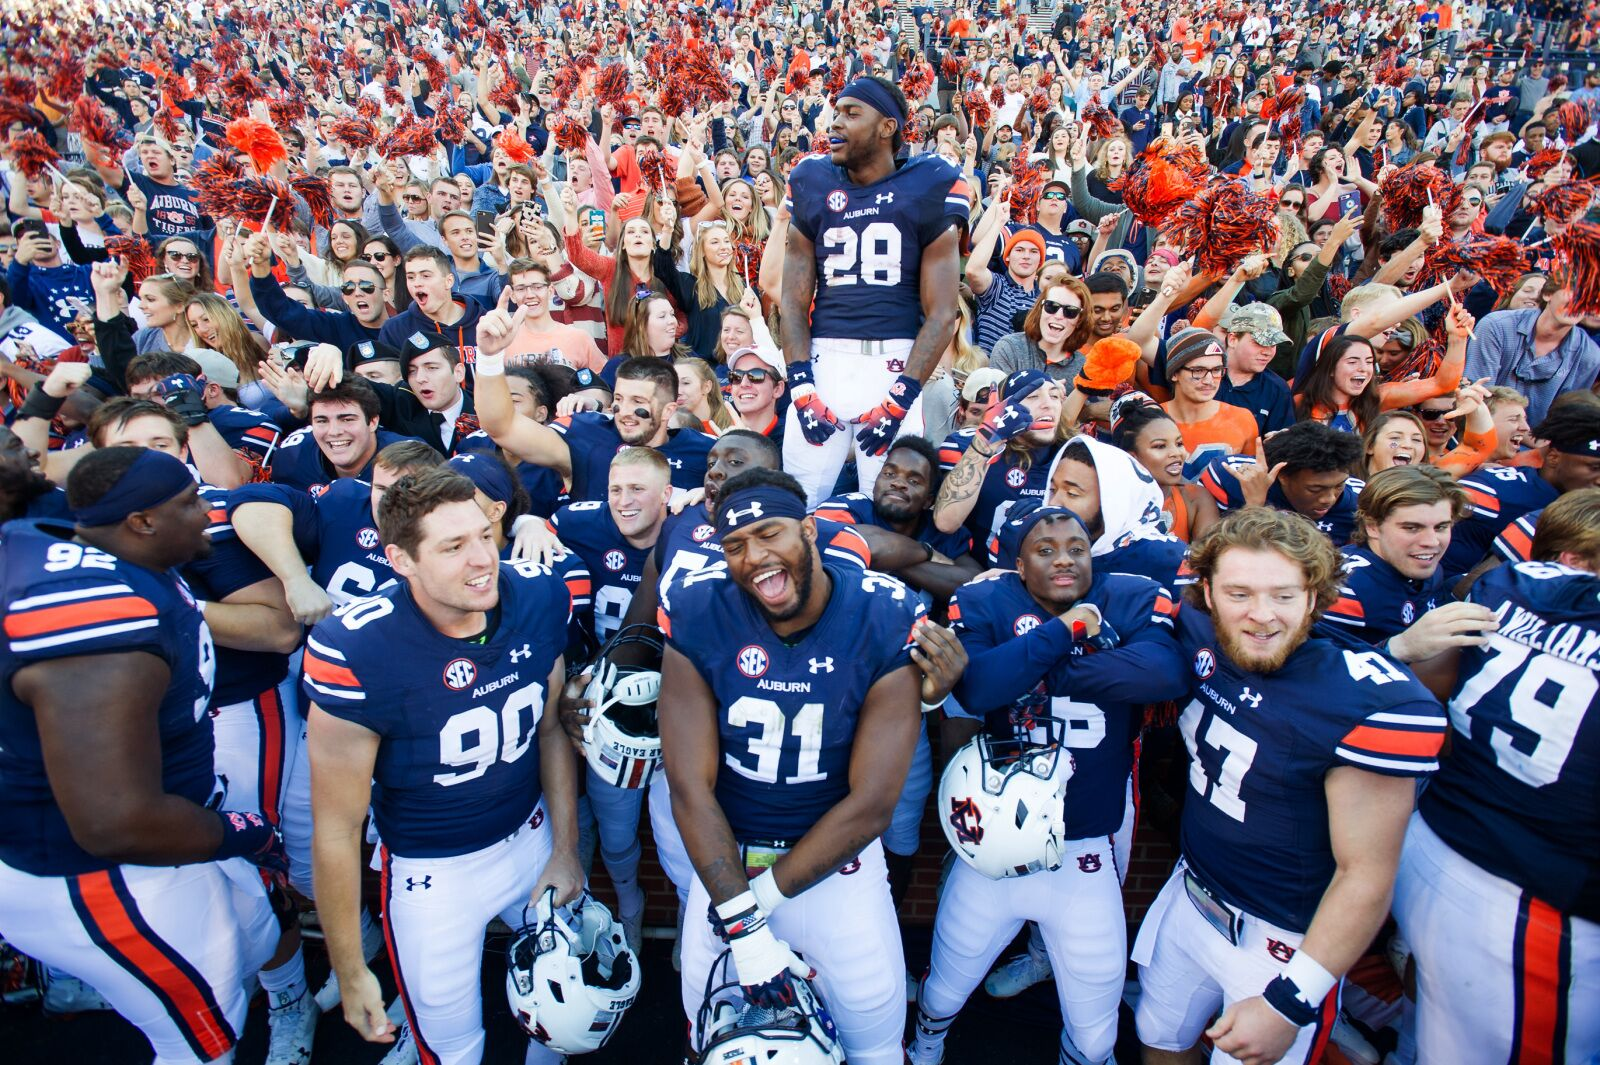 Auburn Football: Post-spring game-by-game predictions for 2019